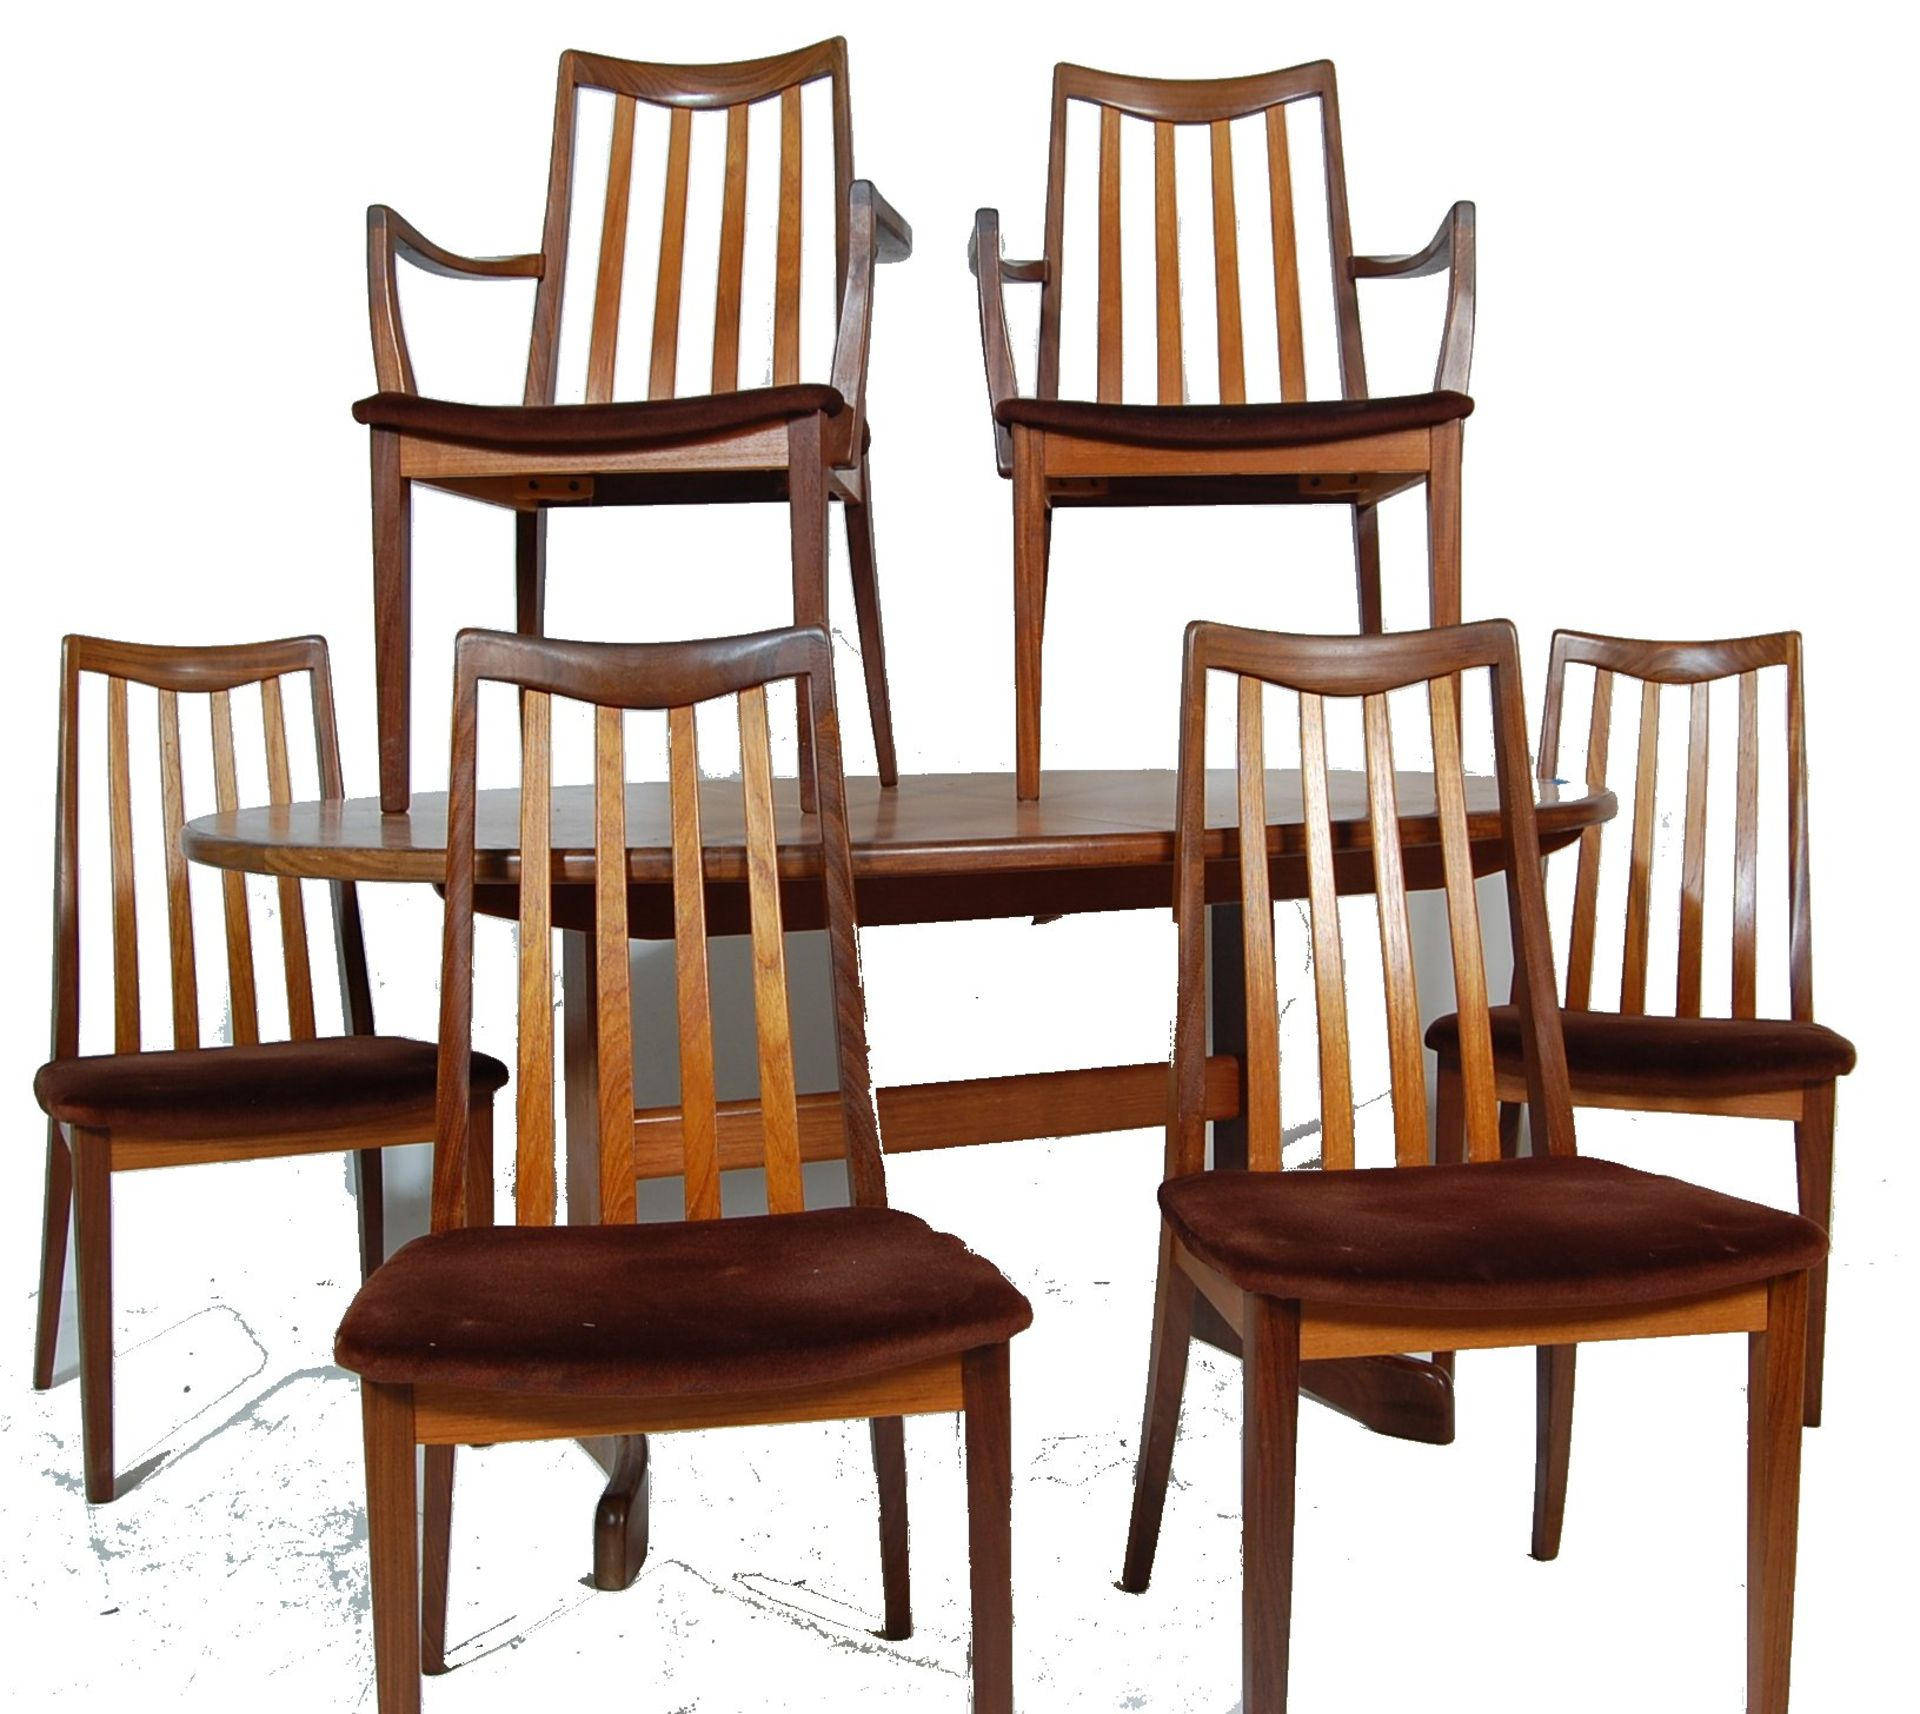 RETRO VINTAGE 1970S GPLAN DINING TABLE AND CHAIRS